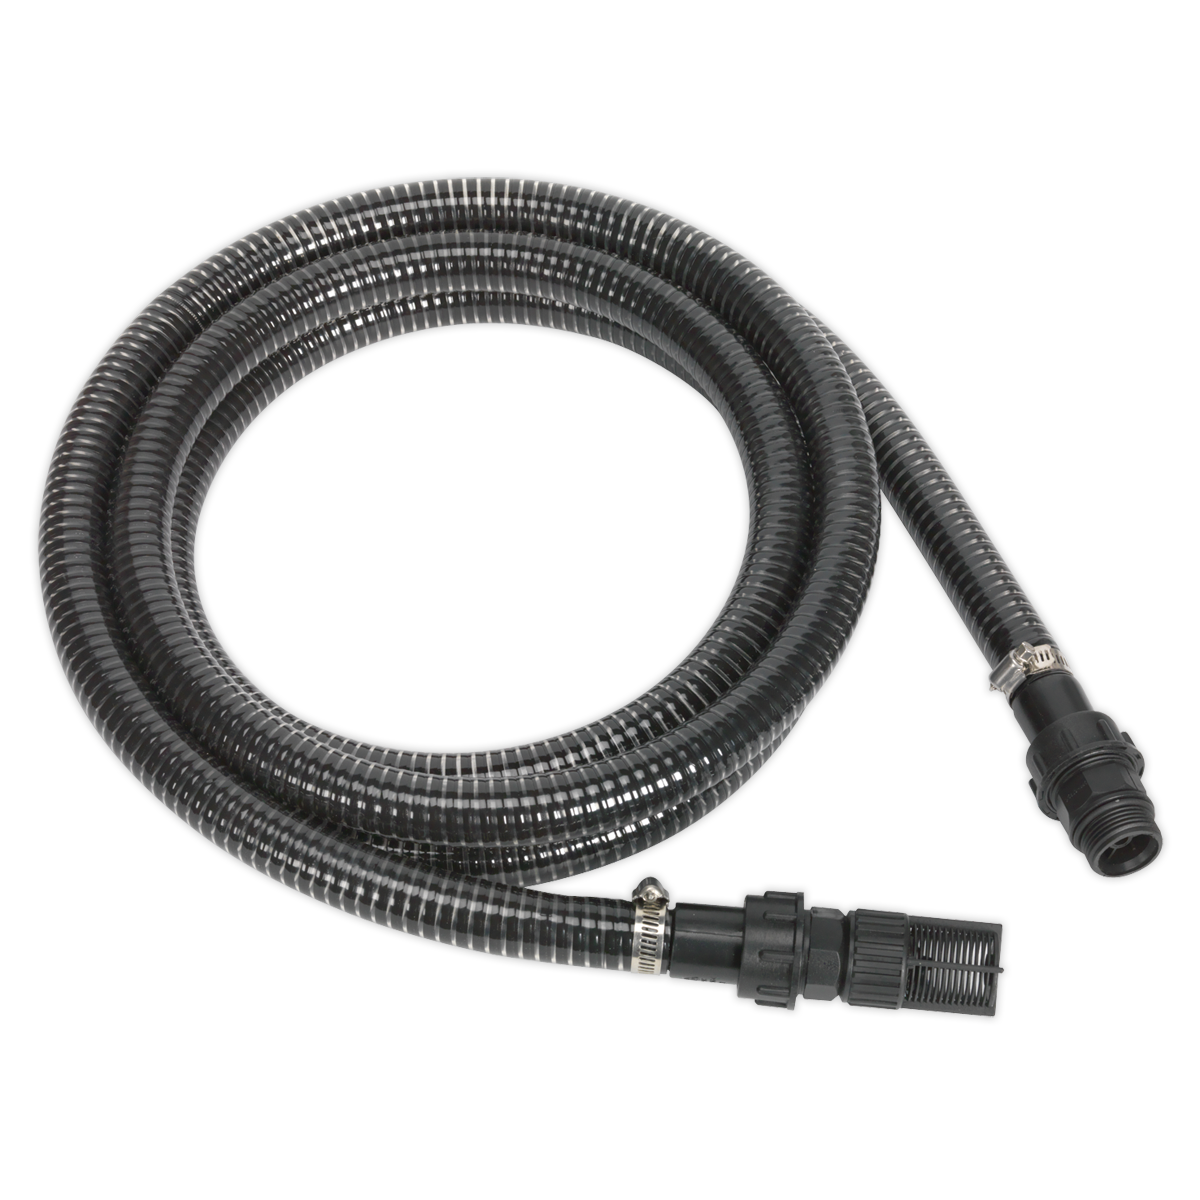 Solid Wall Suction Hose for WPS060 - 25mm x 4m Sealey WPS060HS by Sealey